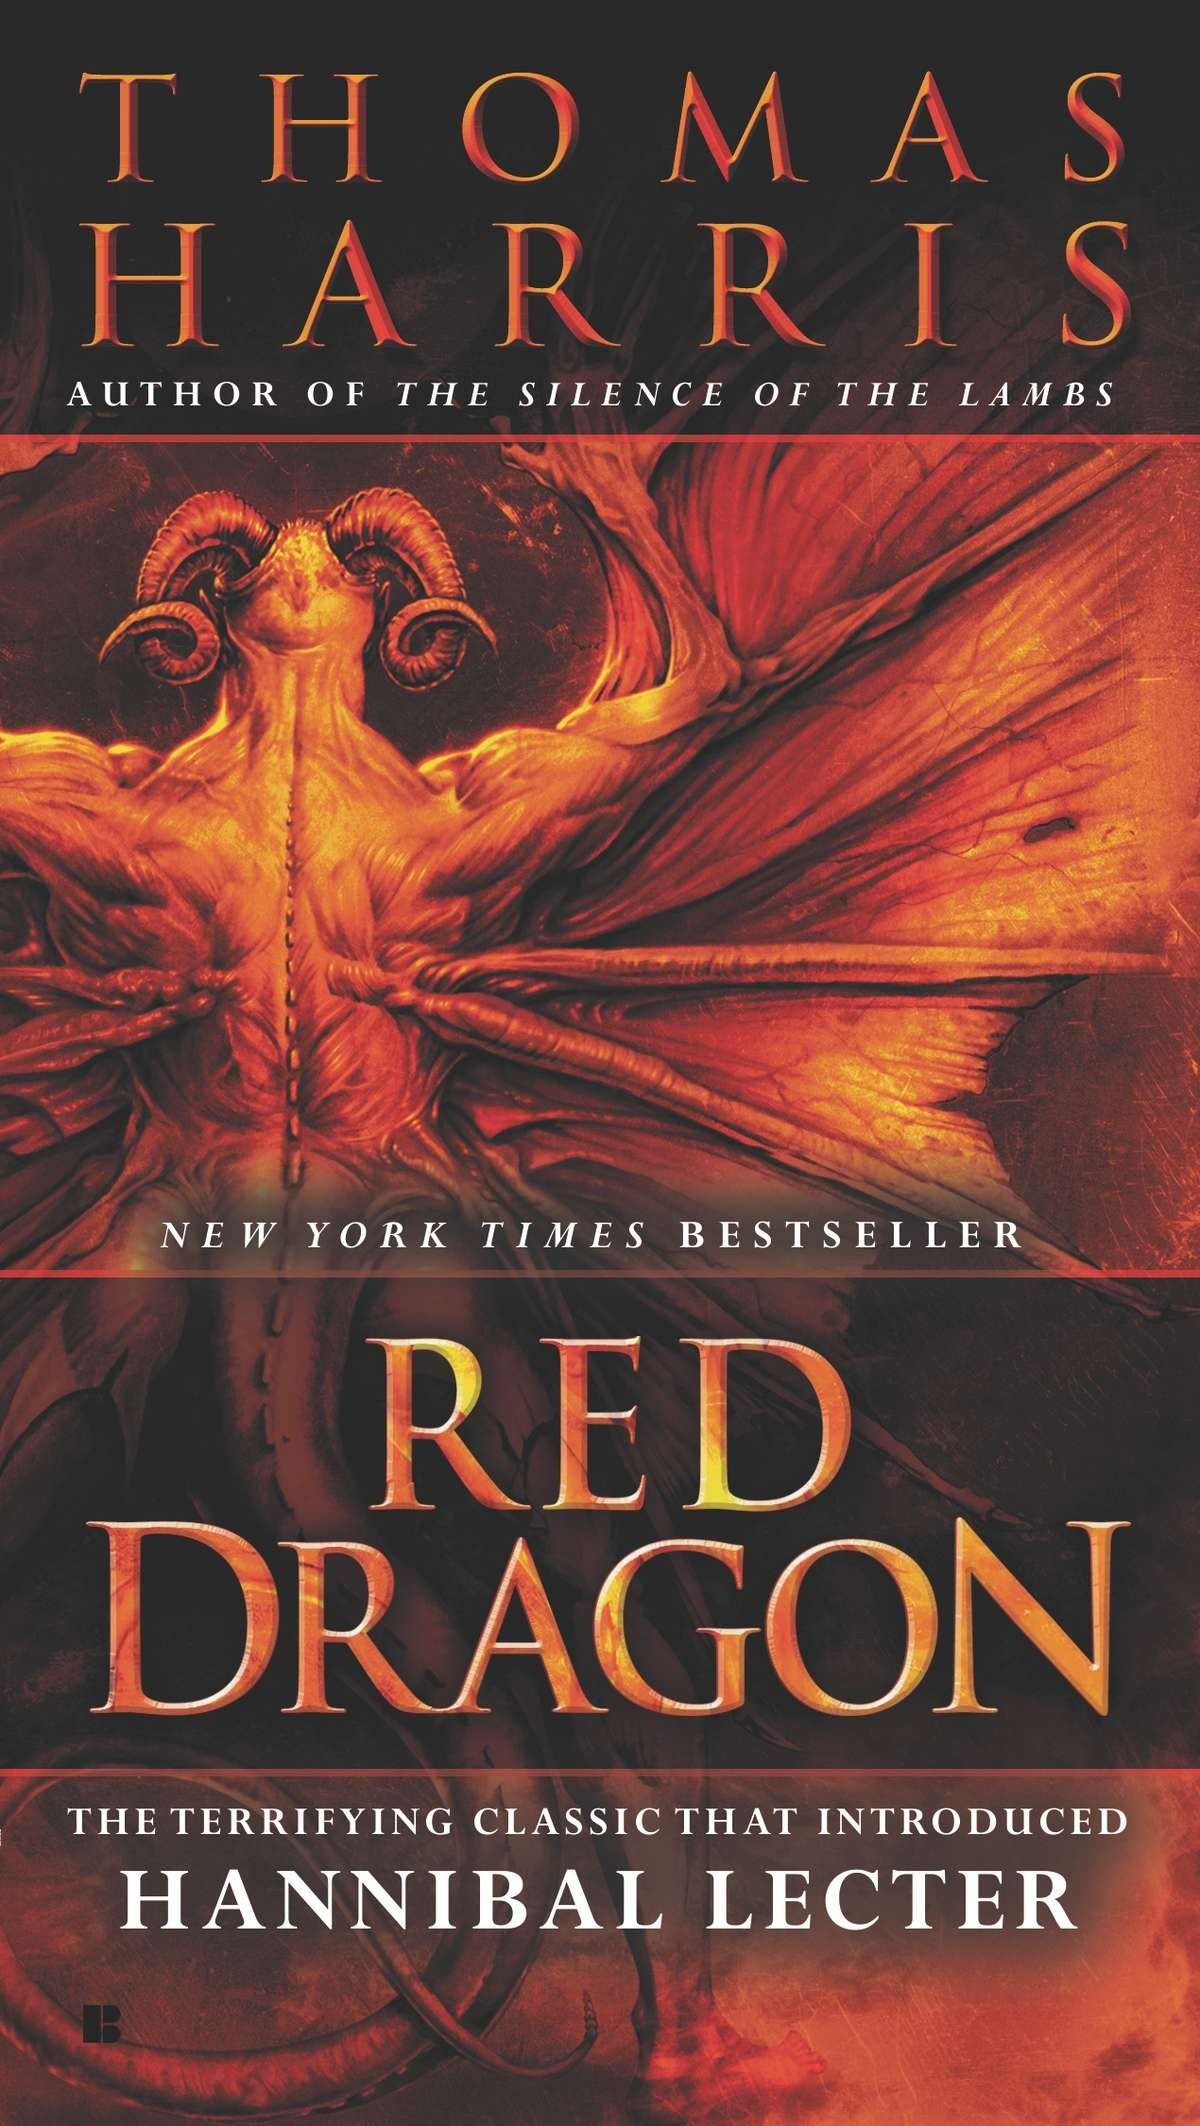 Amazon.com: Red Dragon (Hannibal Lecter Series) (9780425228227 ...